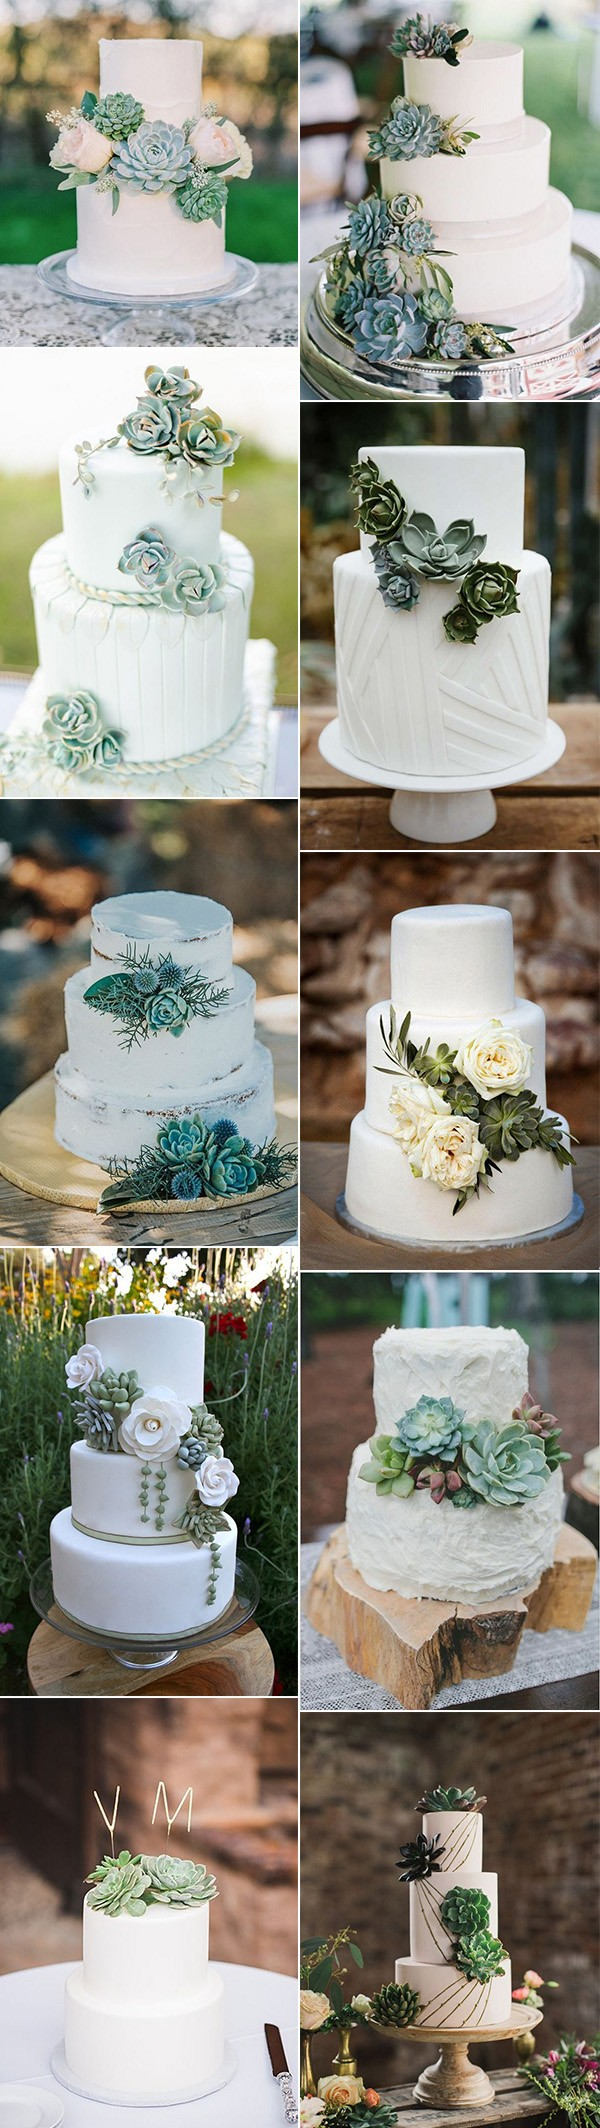 trending white and green wedding cakes with succulents